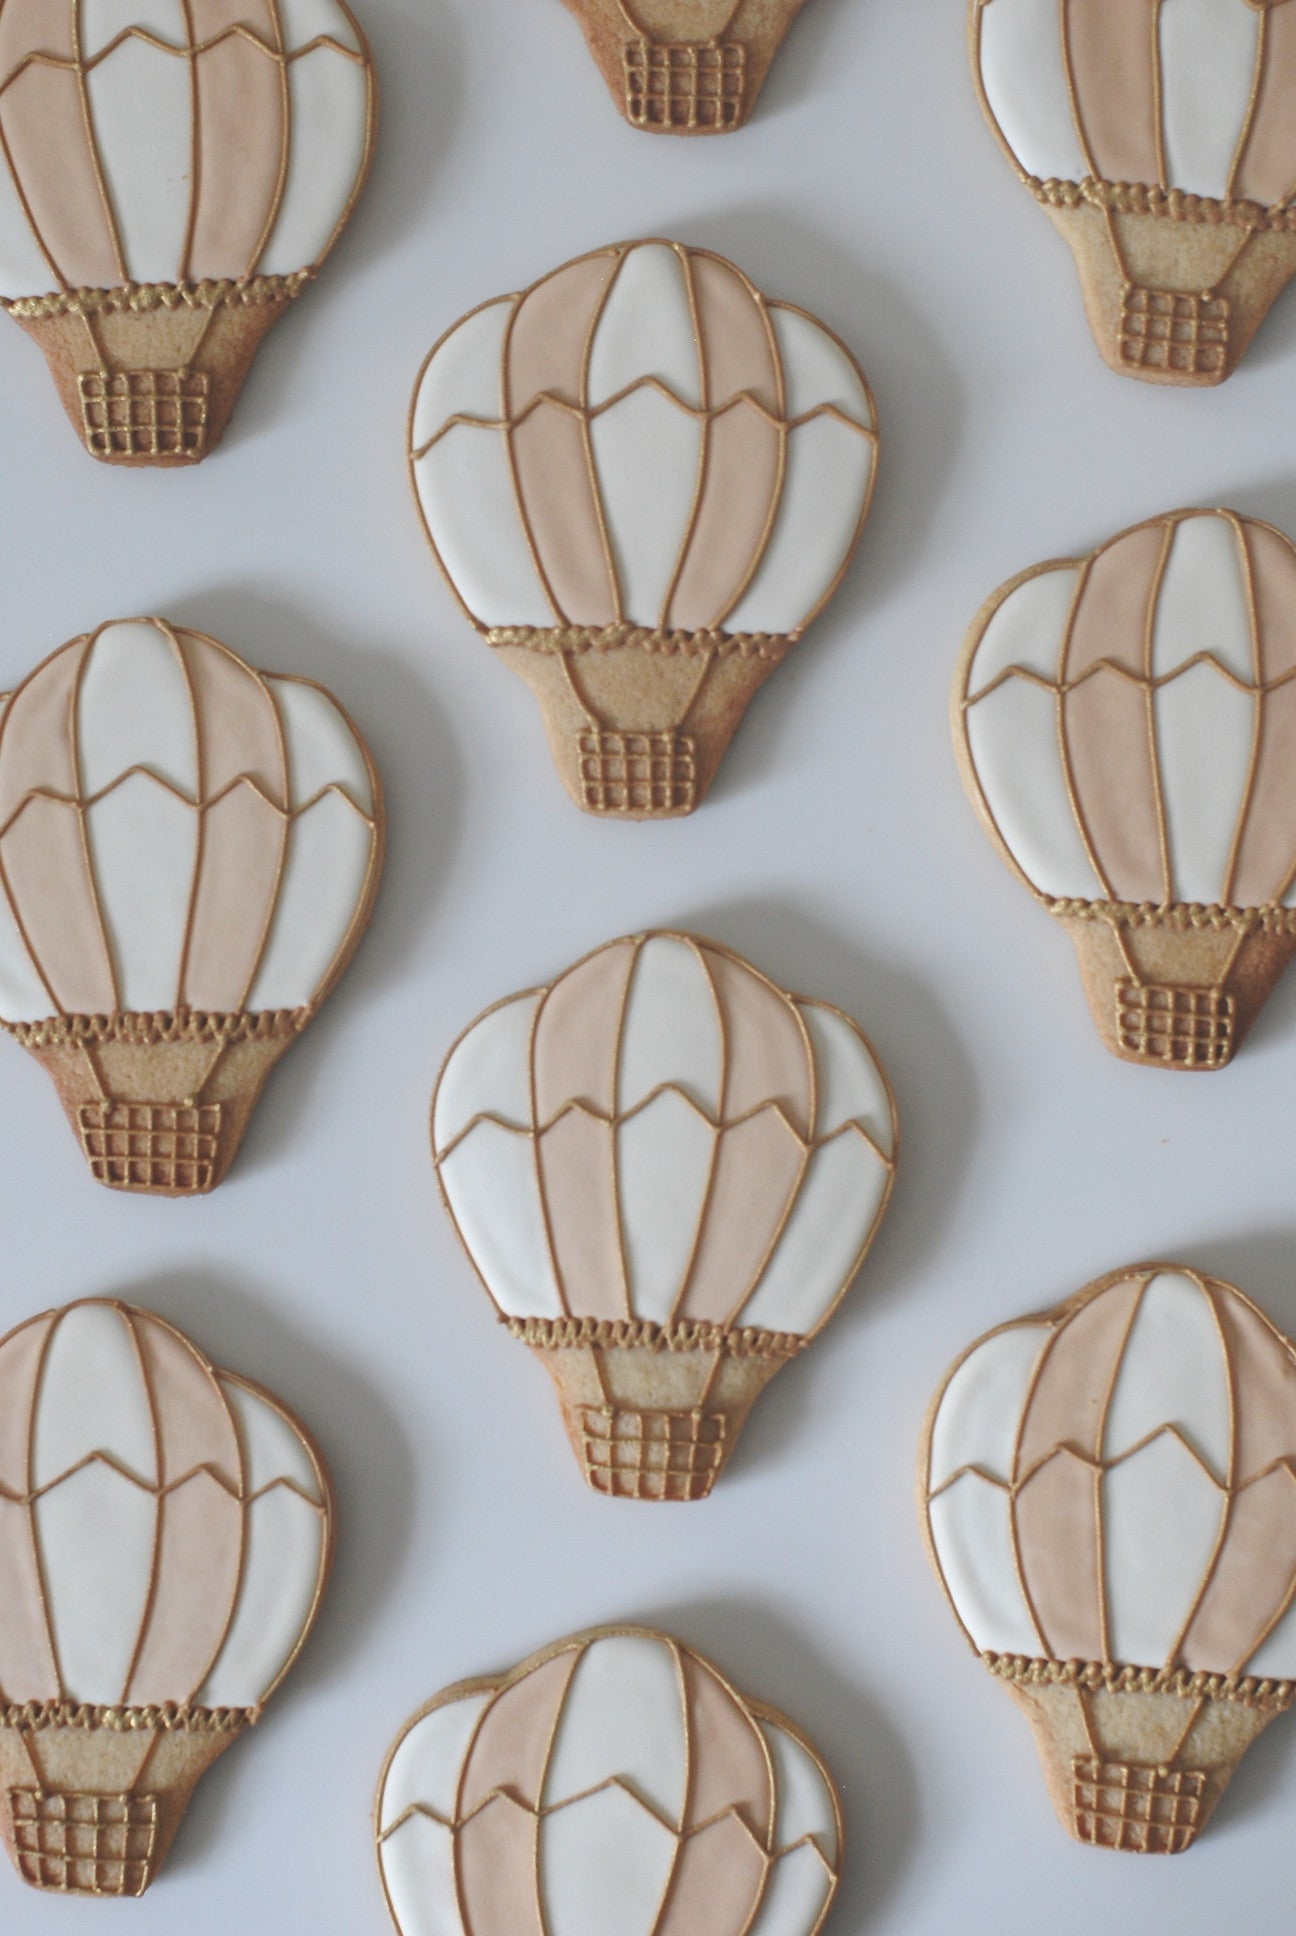 Hot Air Balloon Biscuits